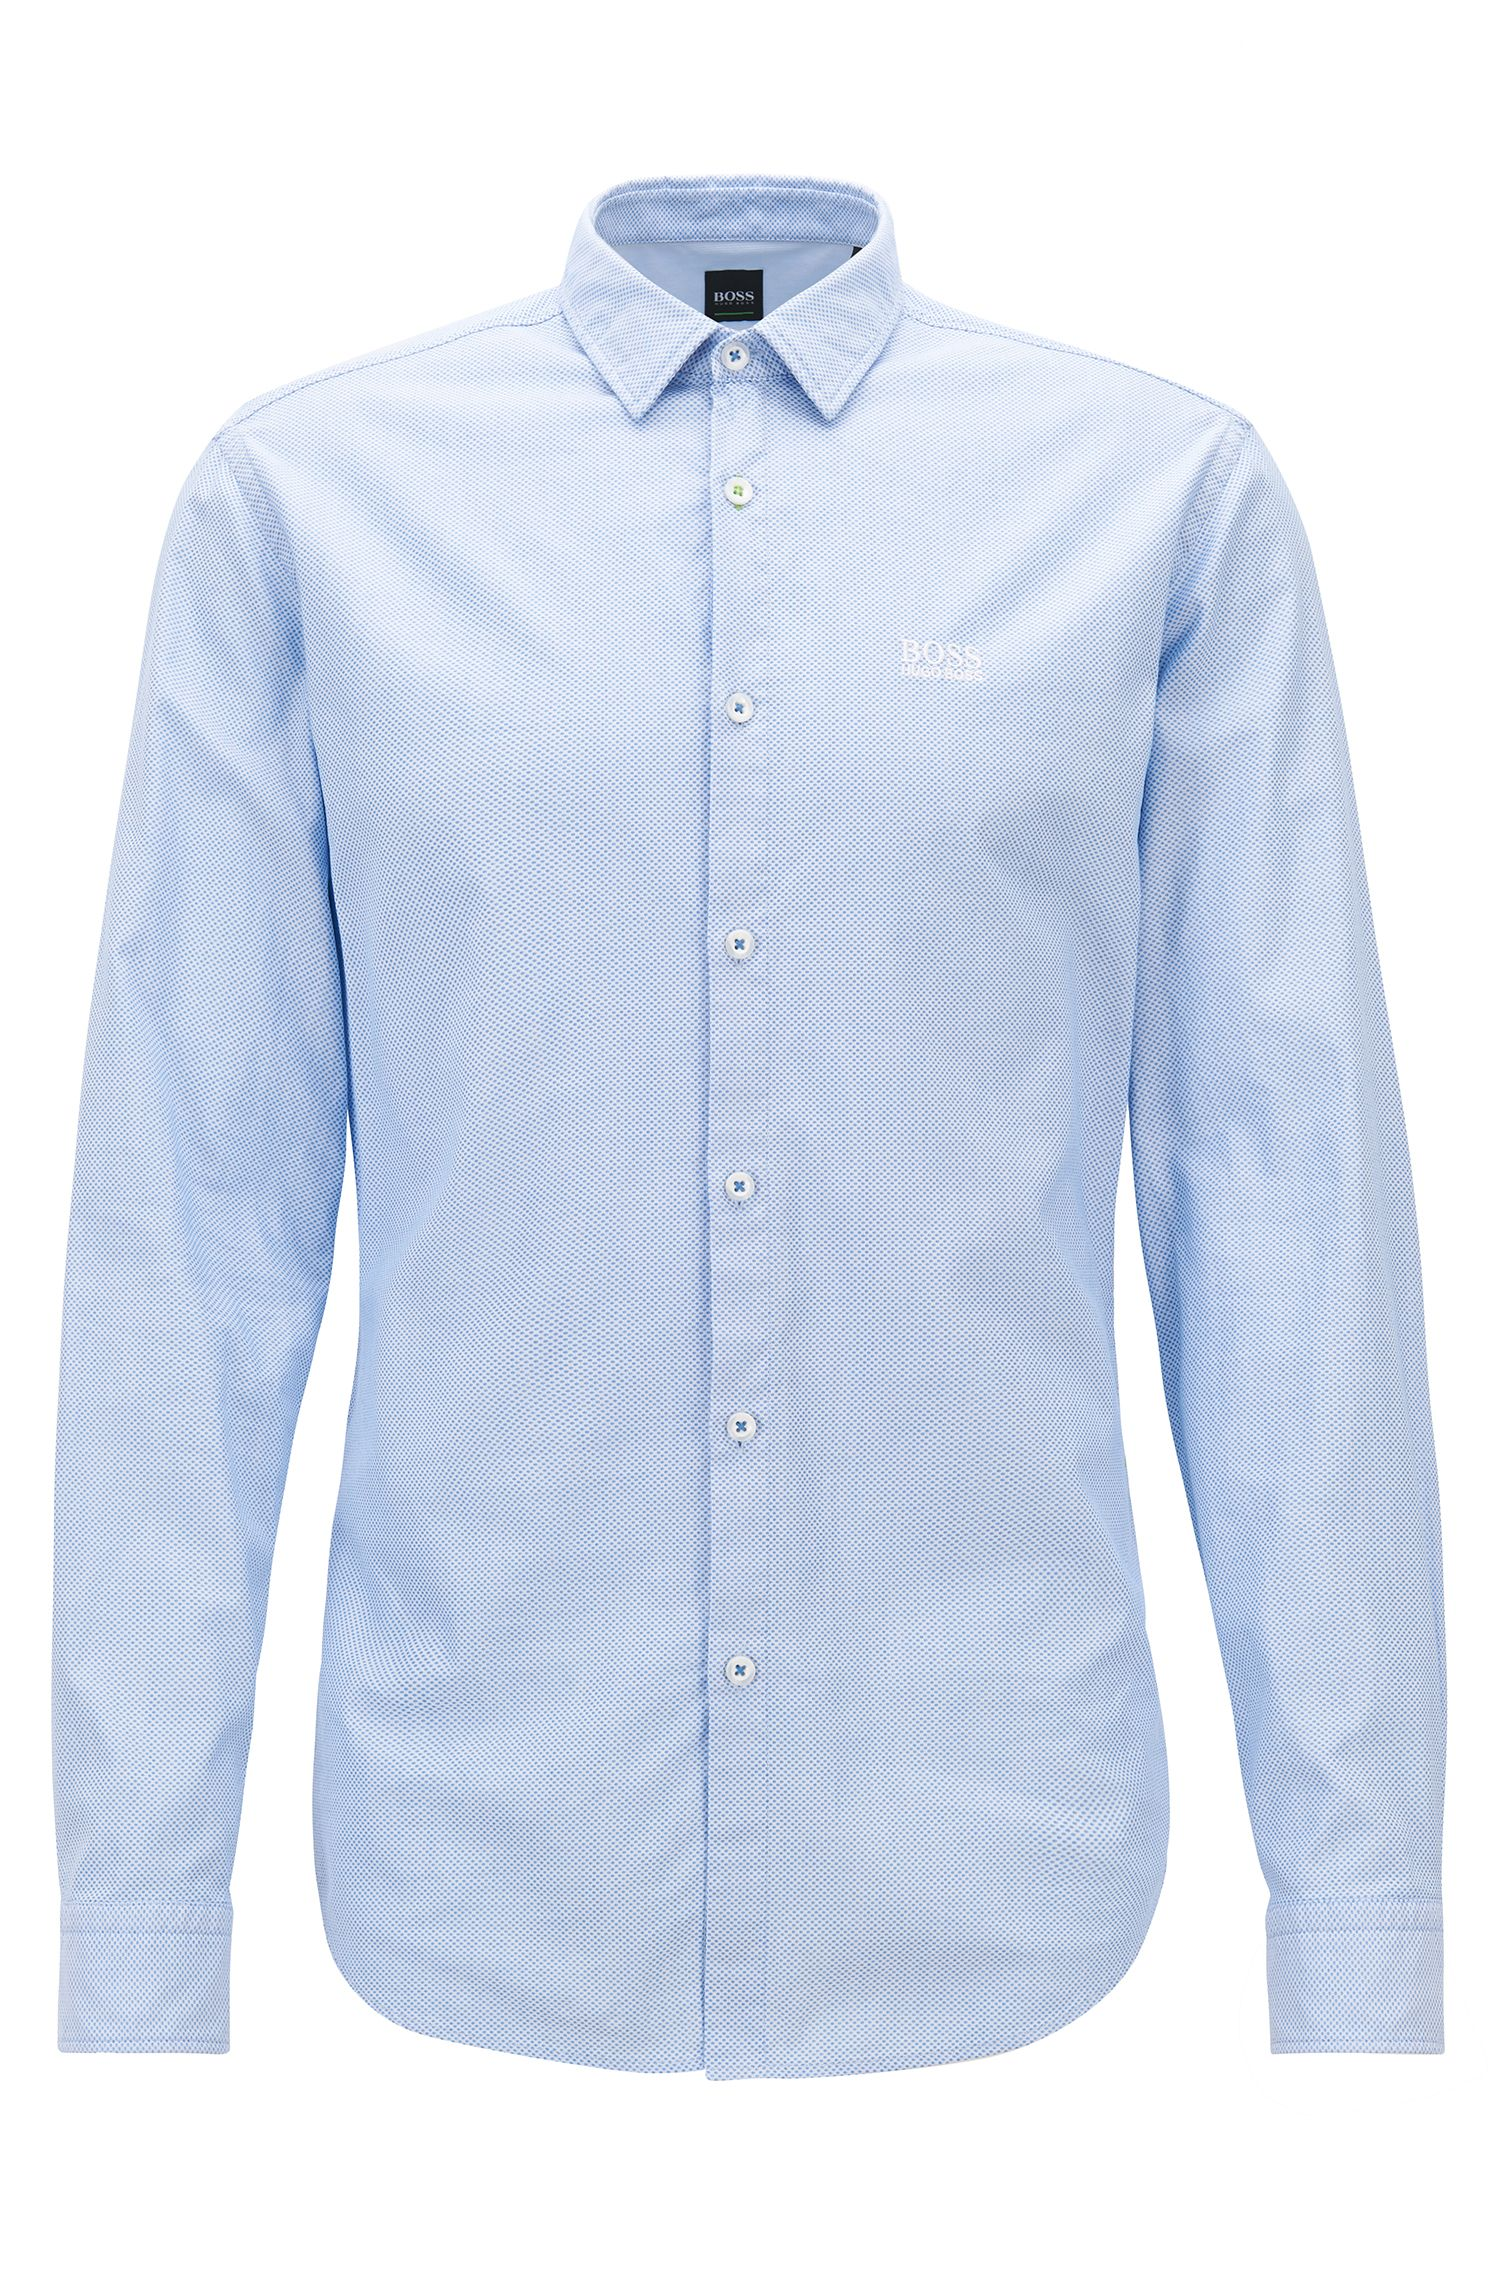 Hugo Boss - Slim-fit shirt in washed dobby cotton - 1